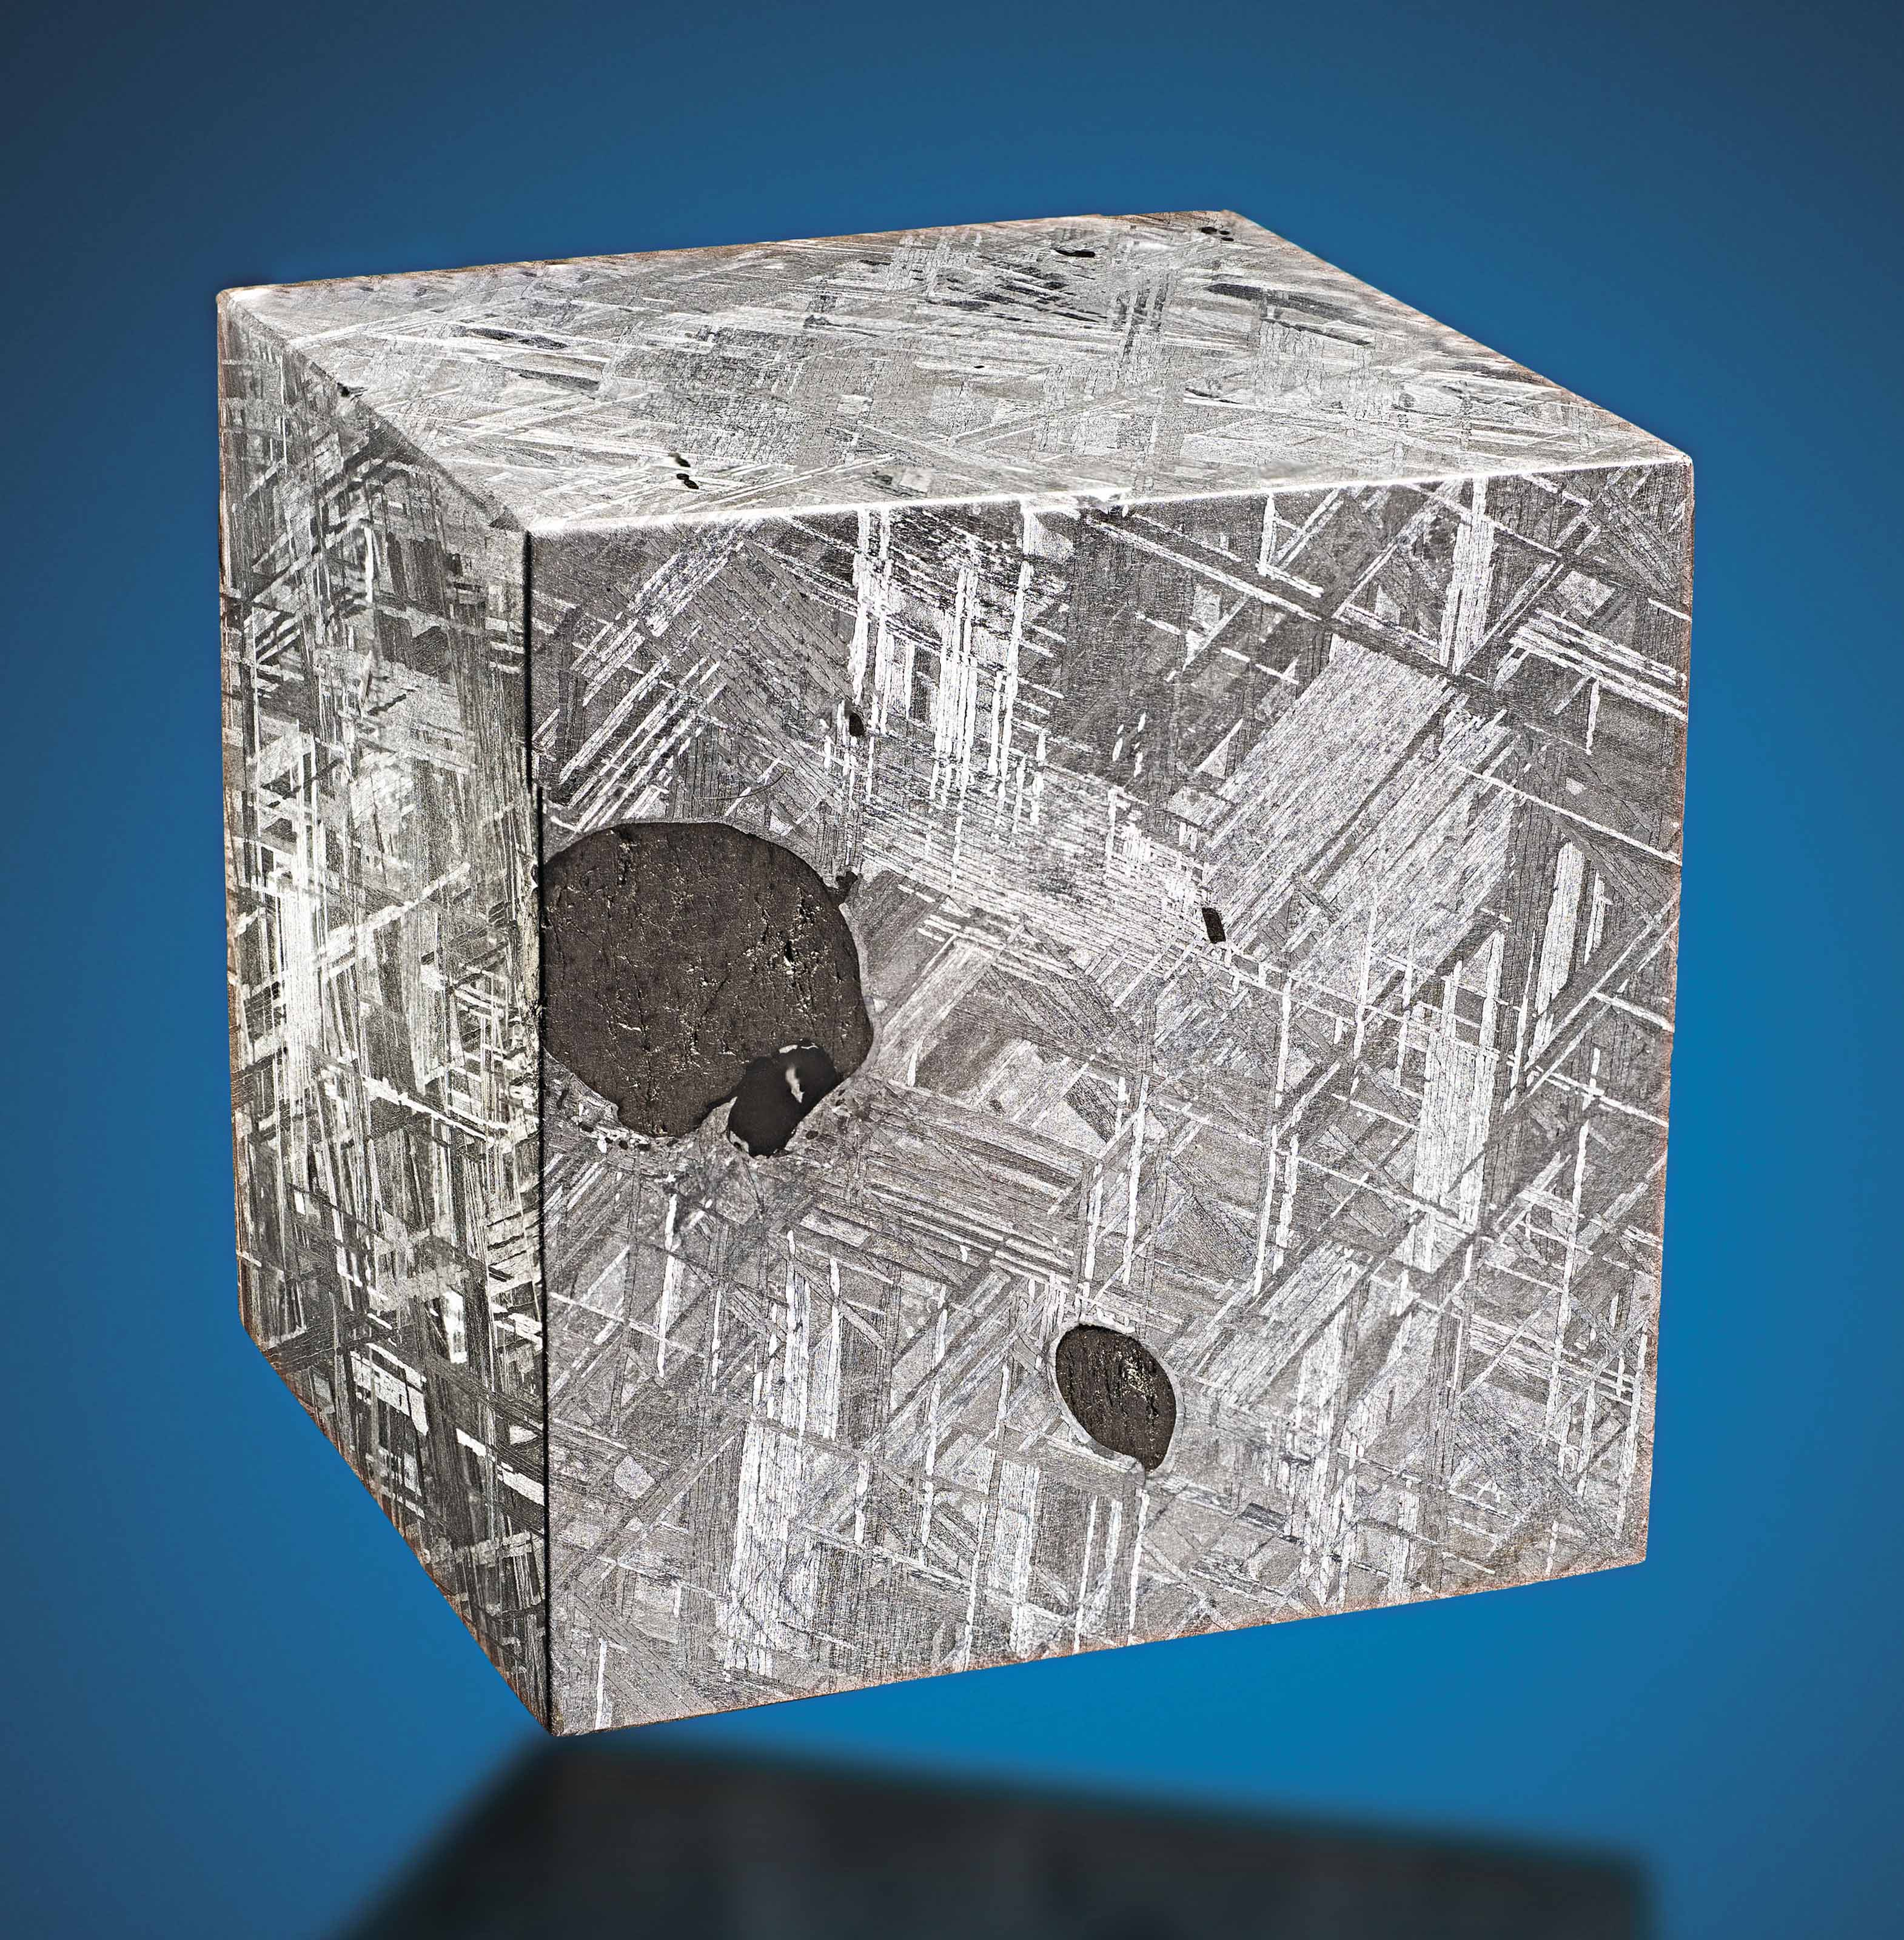 A CUBE OF MUONIONALUSTA METEOR